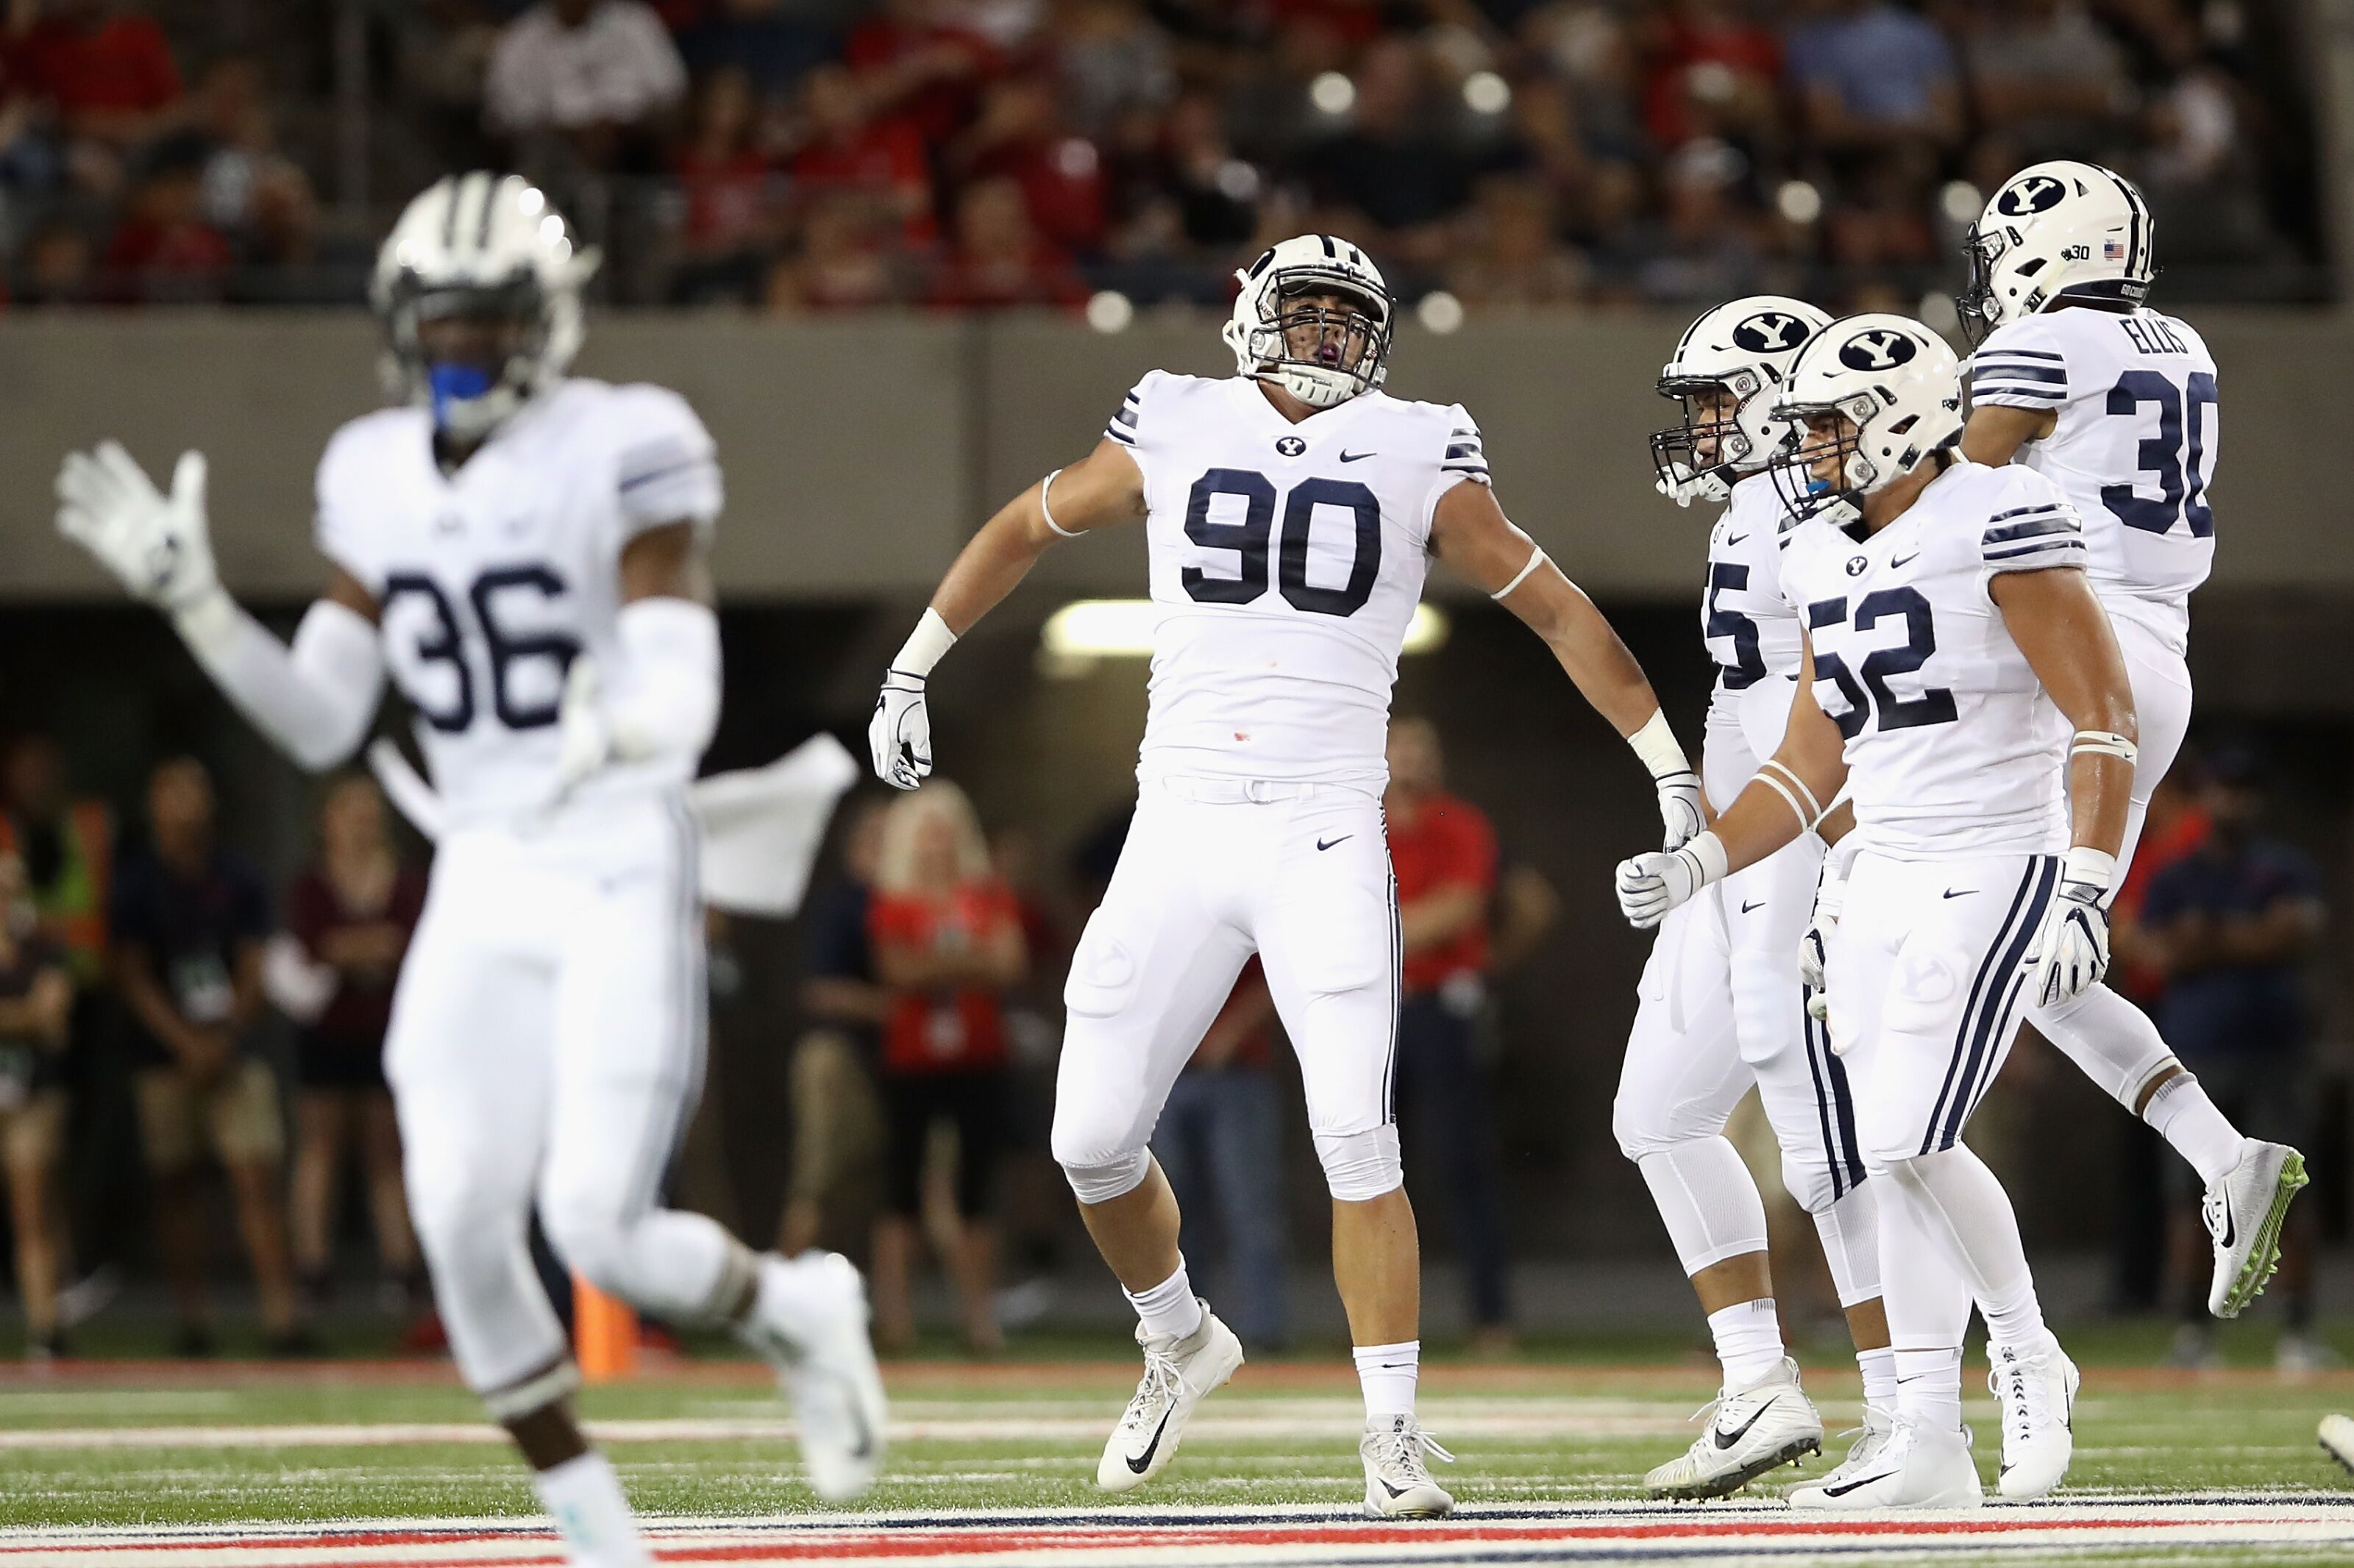 Byu Football Takeaways From The Week 1 Win At Arizona